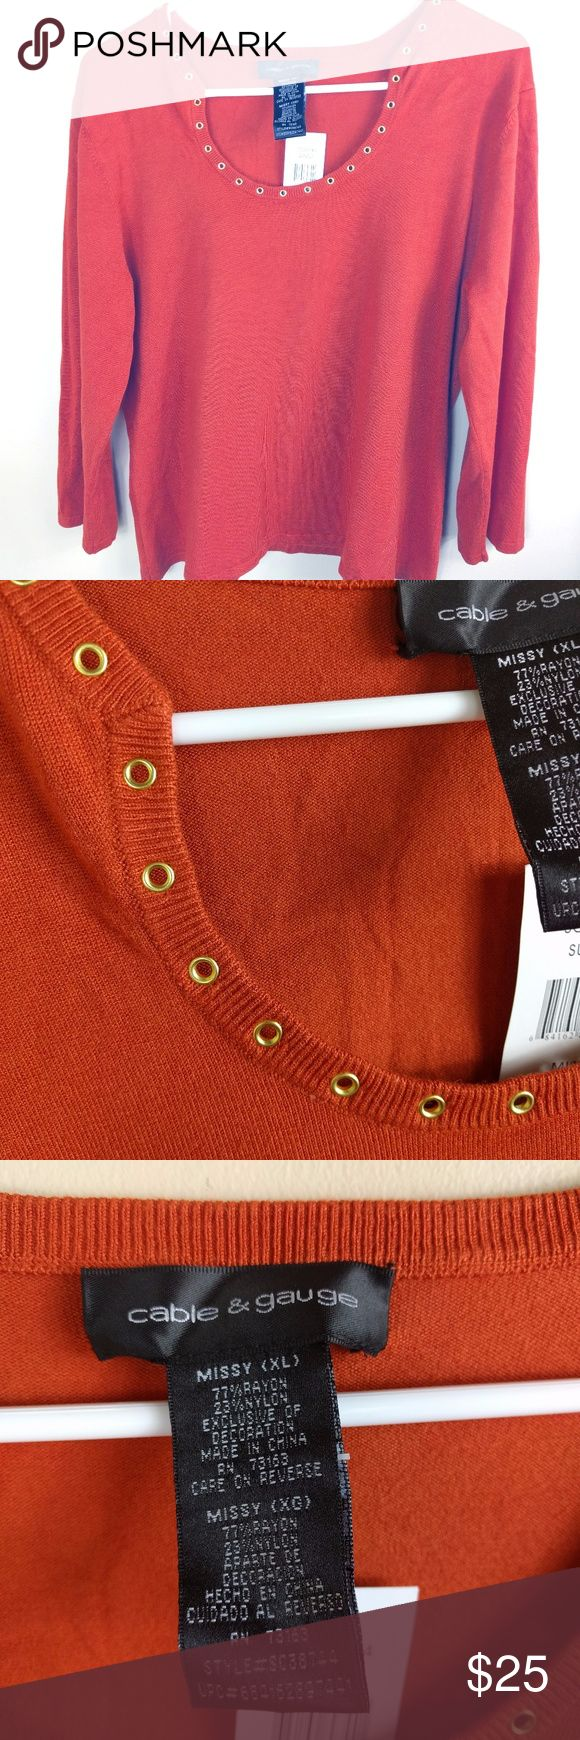 """Cable and Gauge Missy Knit Top Size Xl This stylish burnt orange 3/4 length sleeve shirt from Cable and Gauge is NEW with tags. The item also comes from a smoke free home. It features neat little metal eyelet holes around the collar and is very comfortable.  Flat lay measurements:  Chest 20""""  Waist 19.5""""  Sleeve Length 18""""  Shirt Length 22""""  I am happy to answer any questions you may have.                                    (J) Cable & Gauge Tops"""